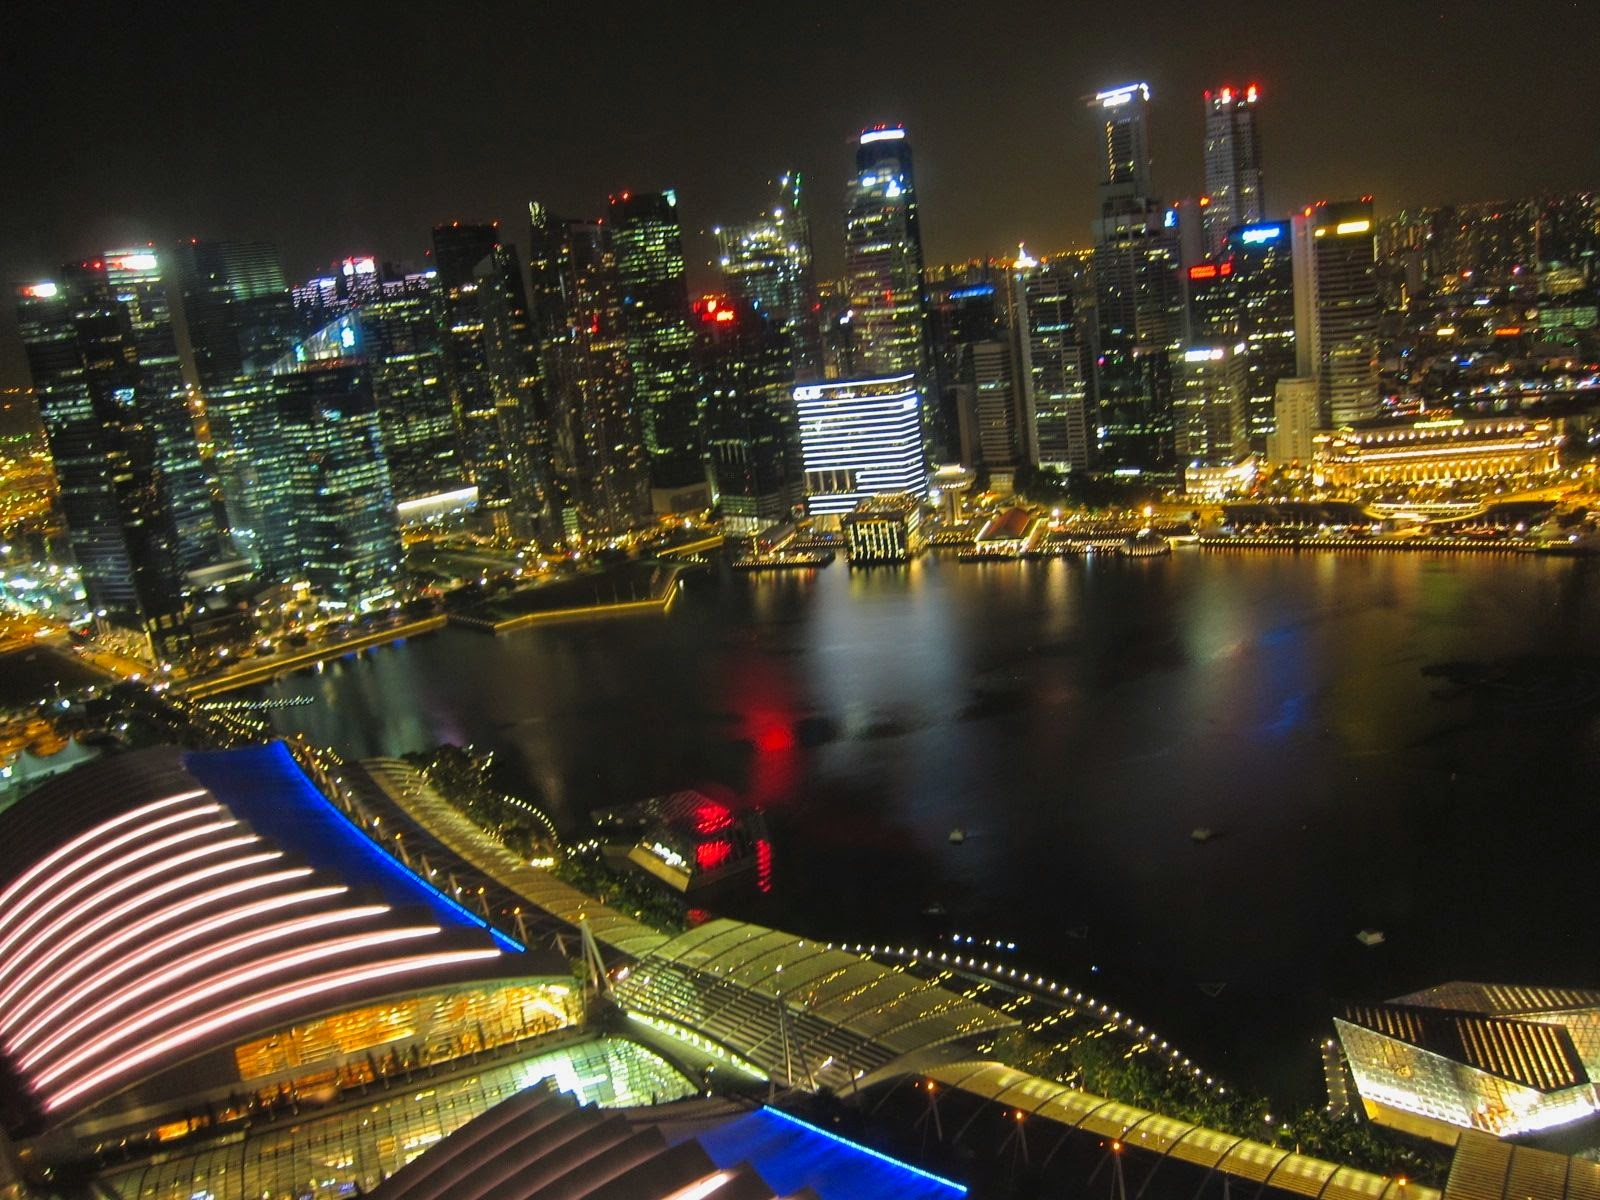 Singapore from the 53rd floor of the Marina Bay Sands